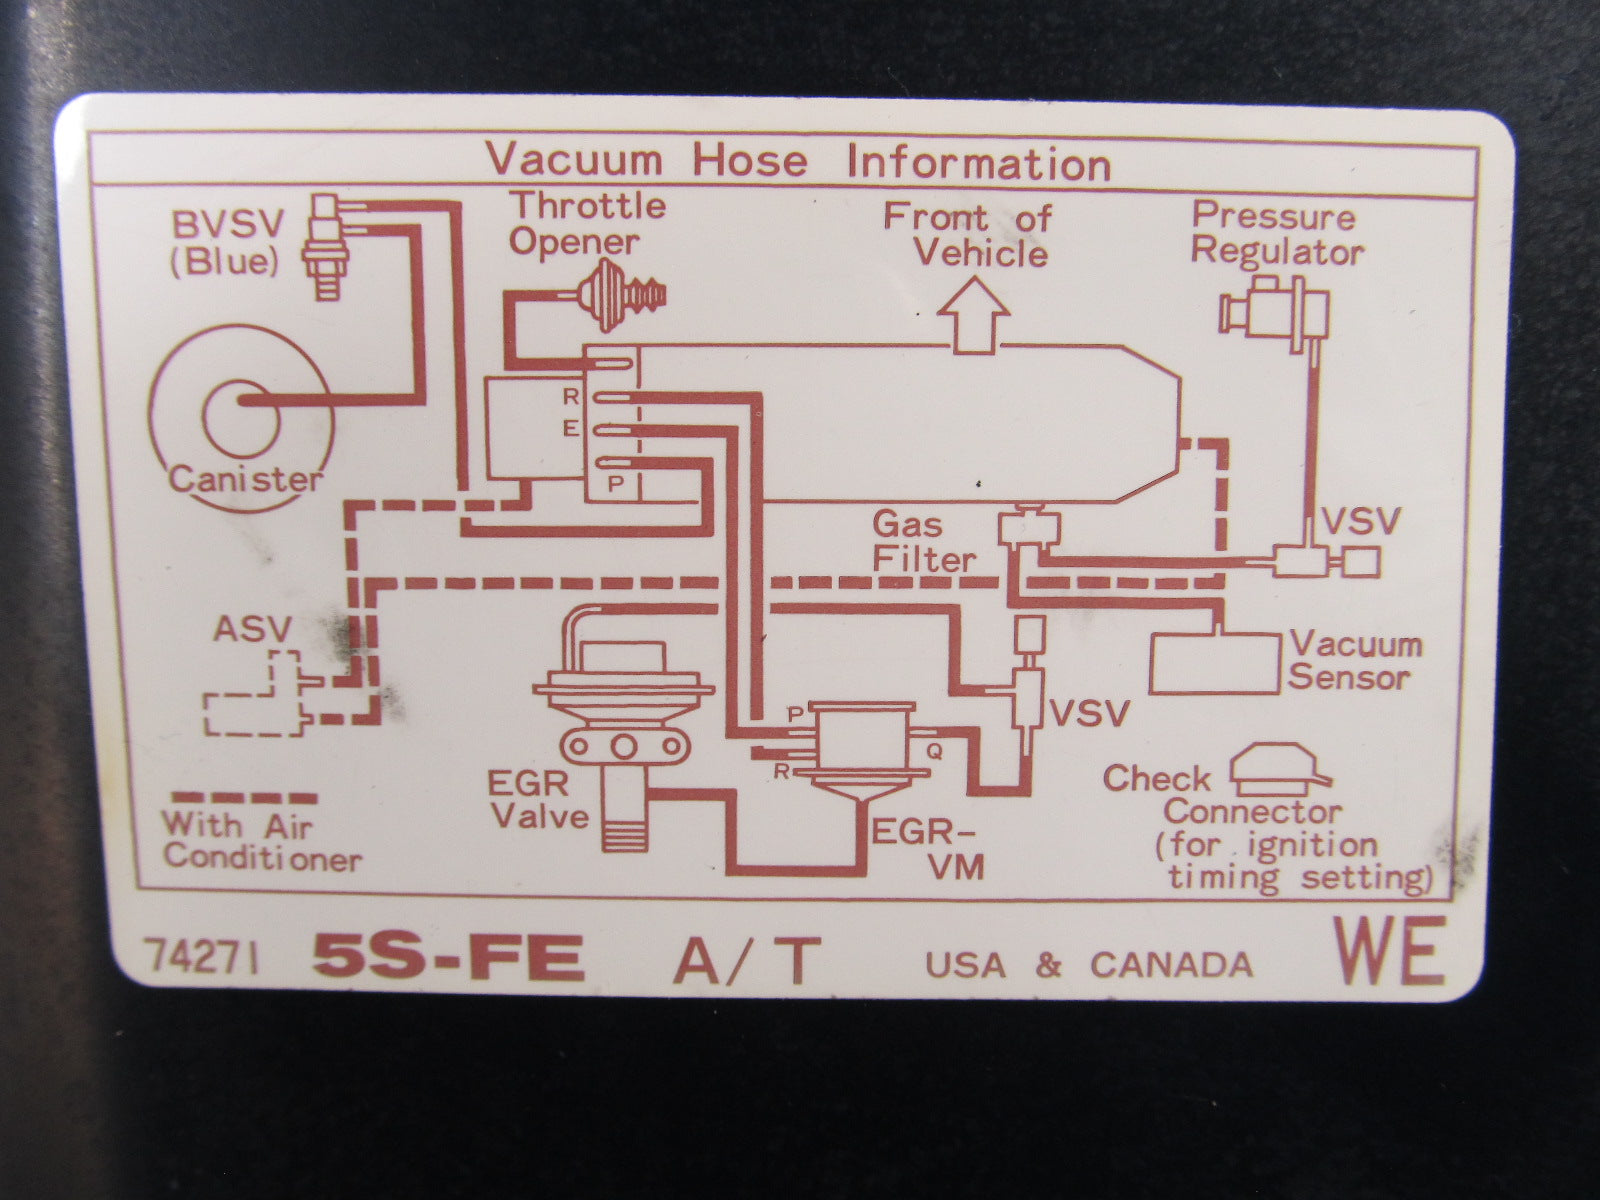 1997 Toyota Camry Vacuum Hose Diagram Electrical Wiring Diagrams 1994 5sfe On 1996